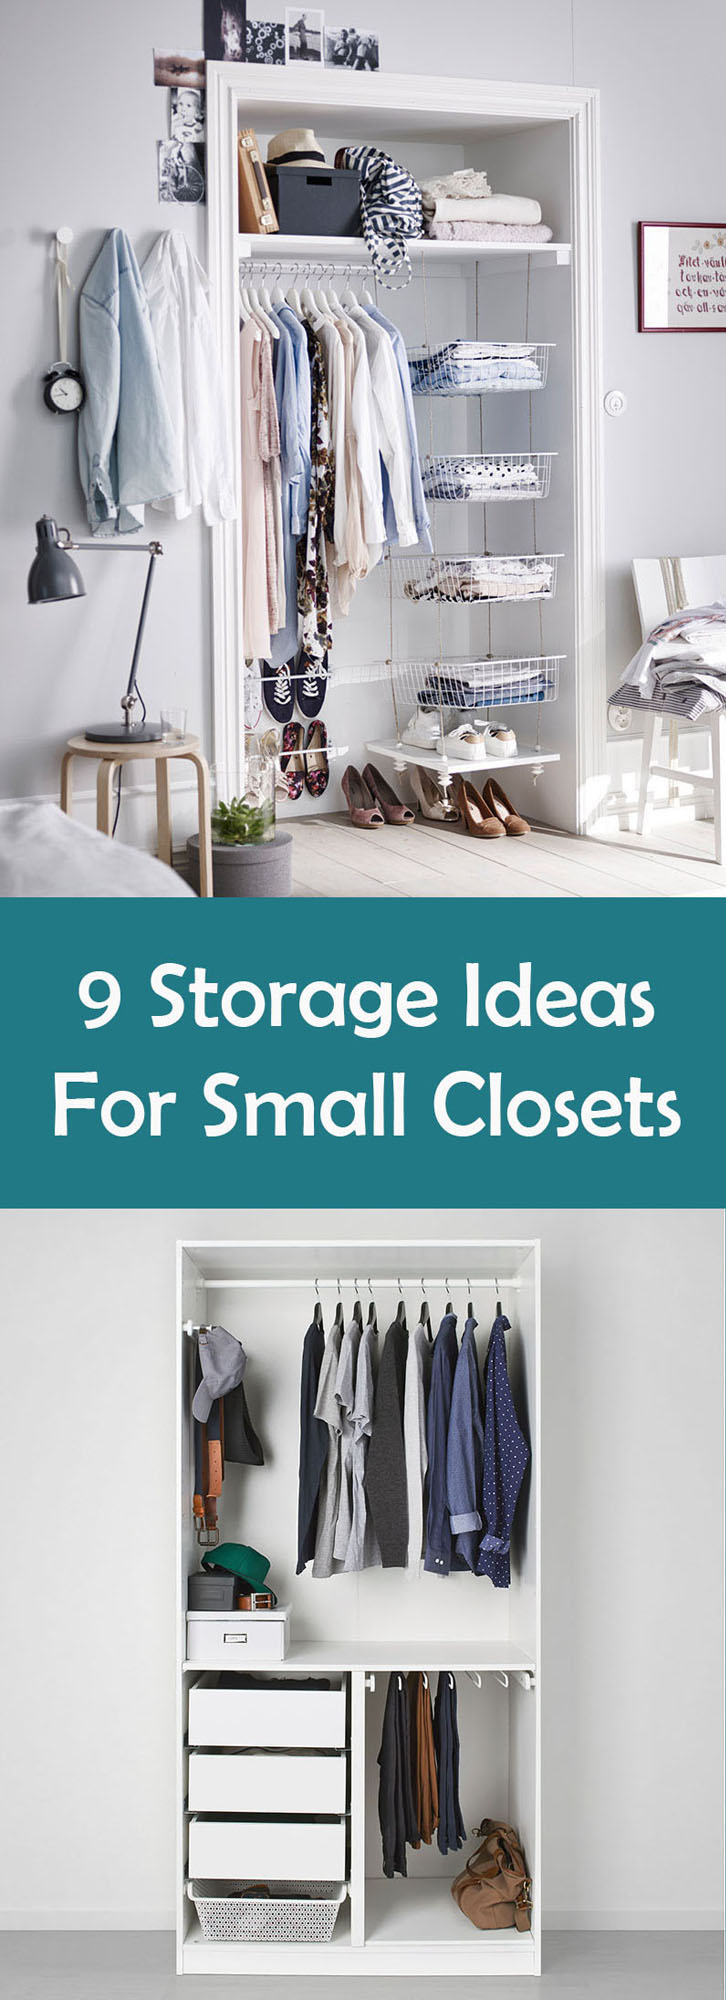 24 Storage Ideas For Small Closets